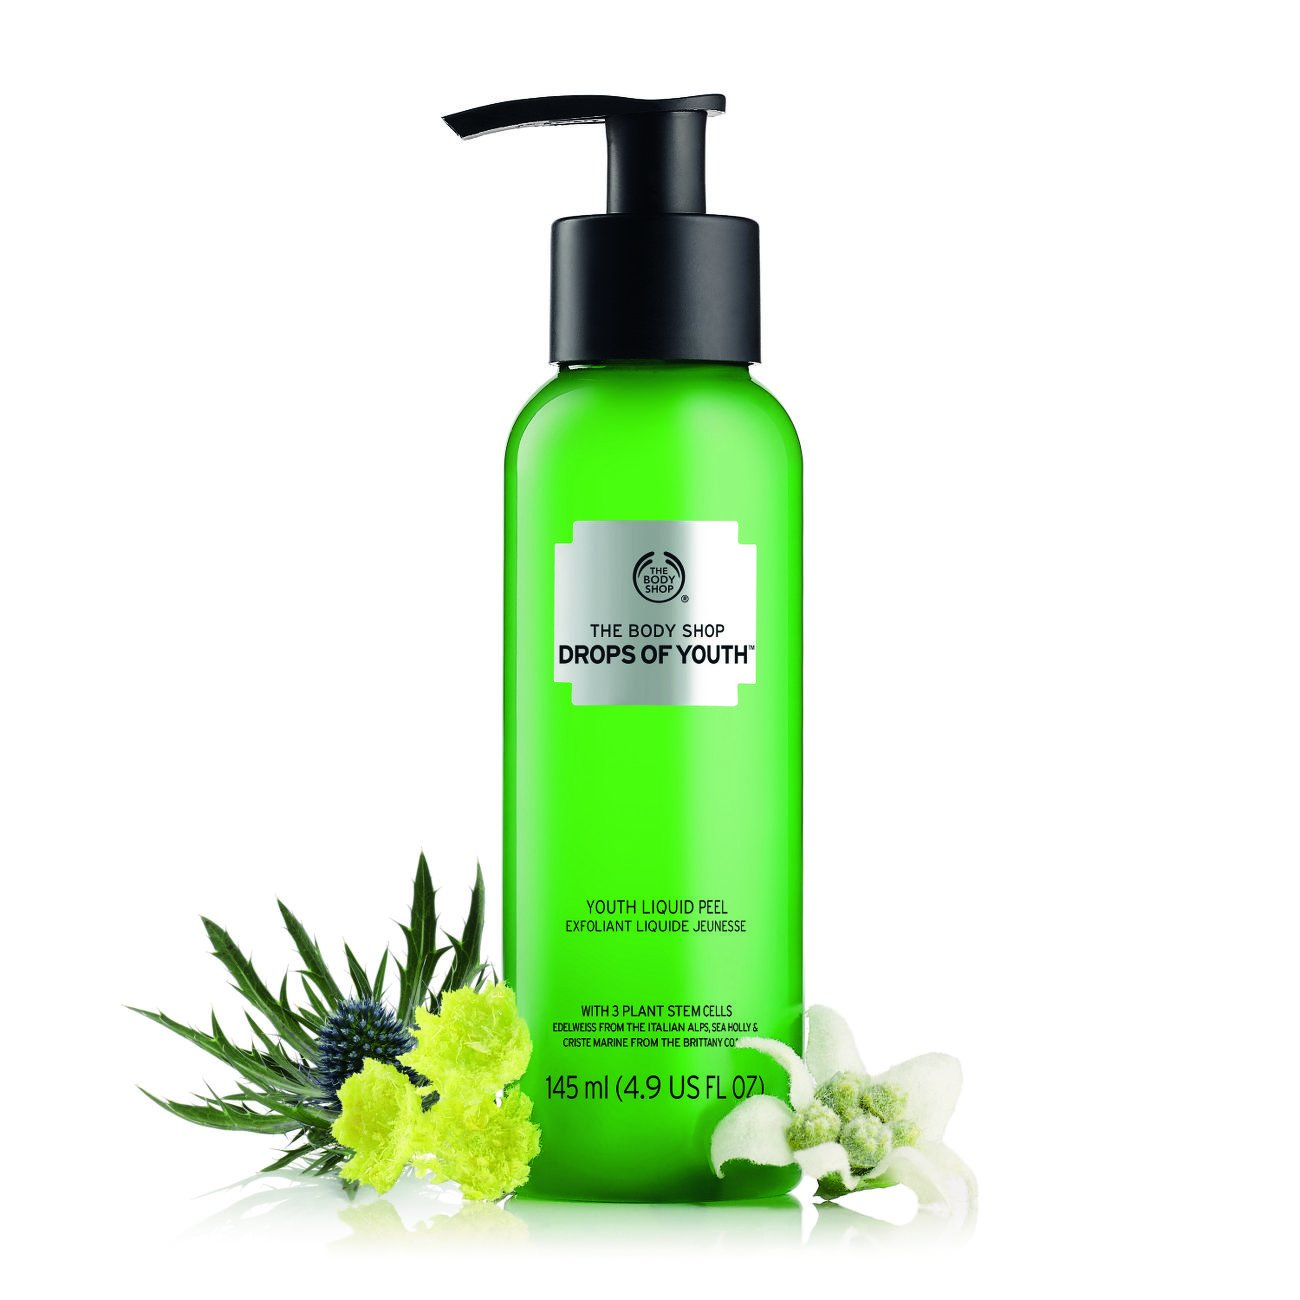 The Body Shop Drops of Youth Liquid Peel - 145ml (Vegan) The Body Shop Canada